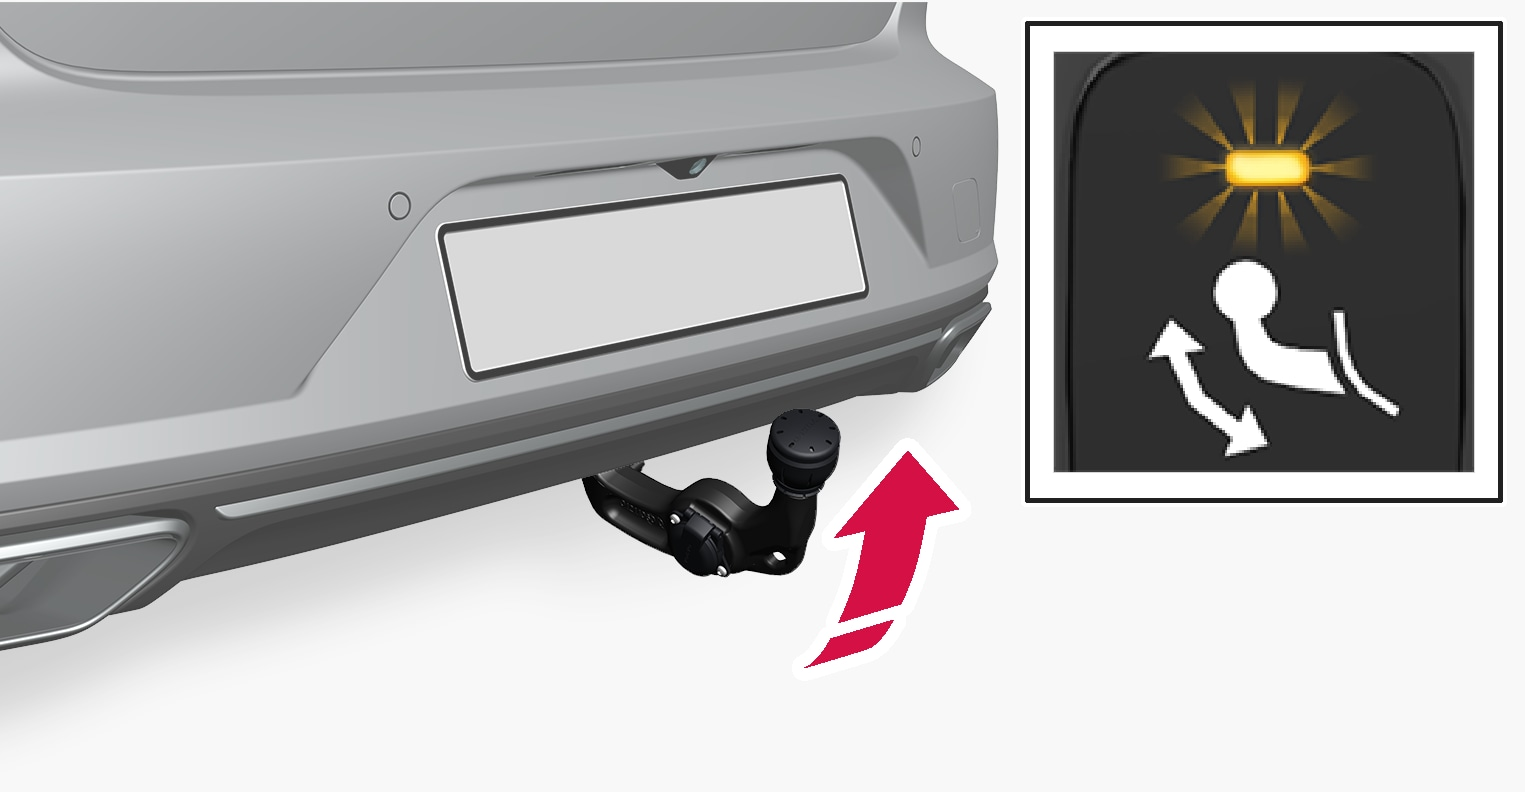 P5-1617-S90-V90-Swivable towbar and switch foldout step 2